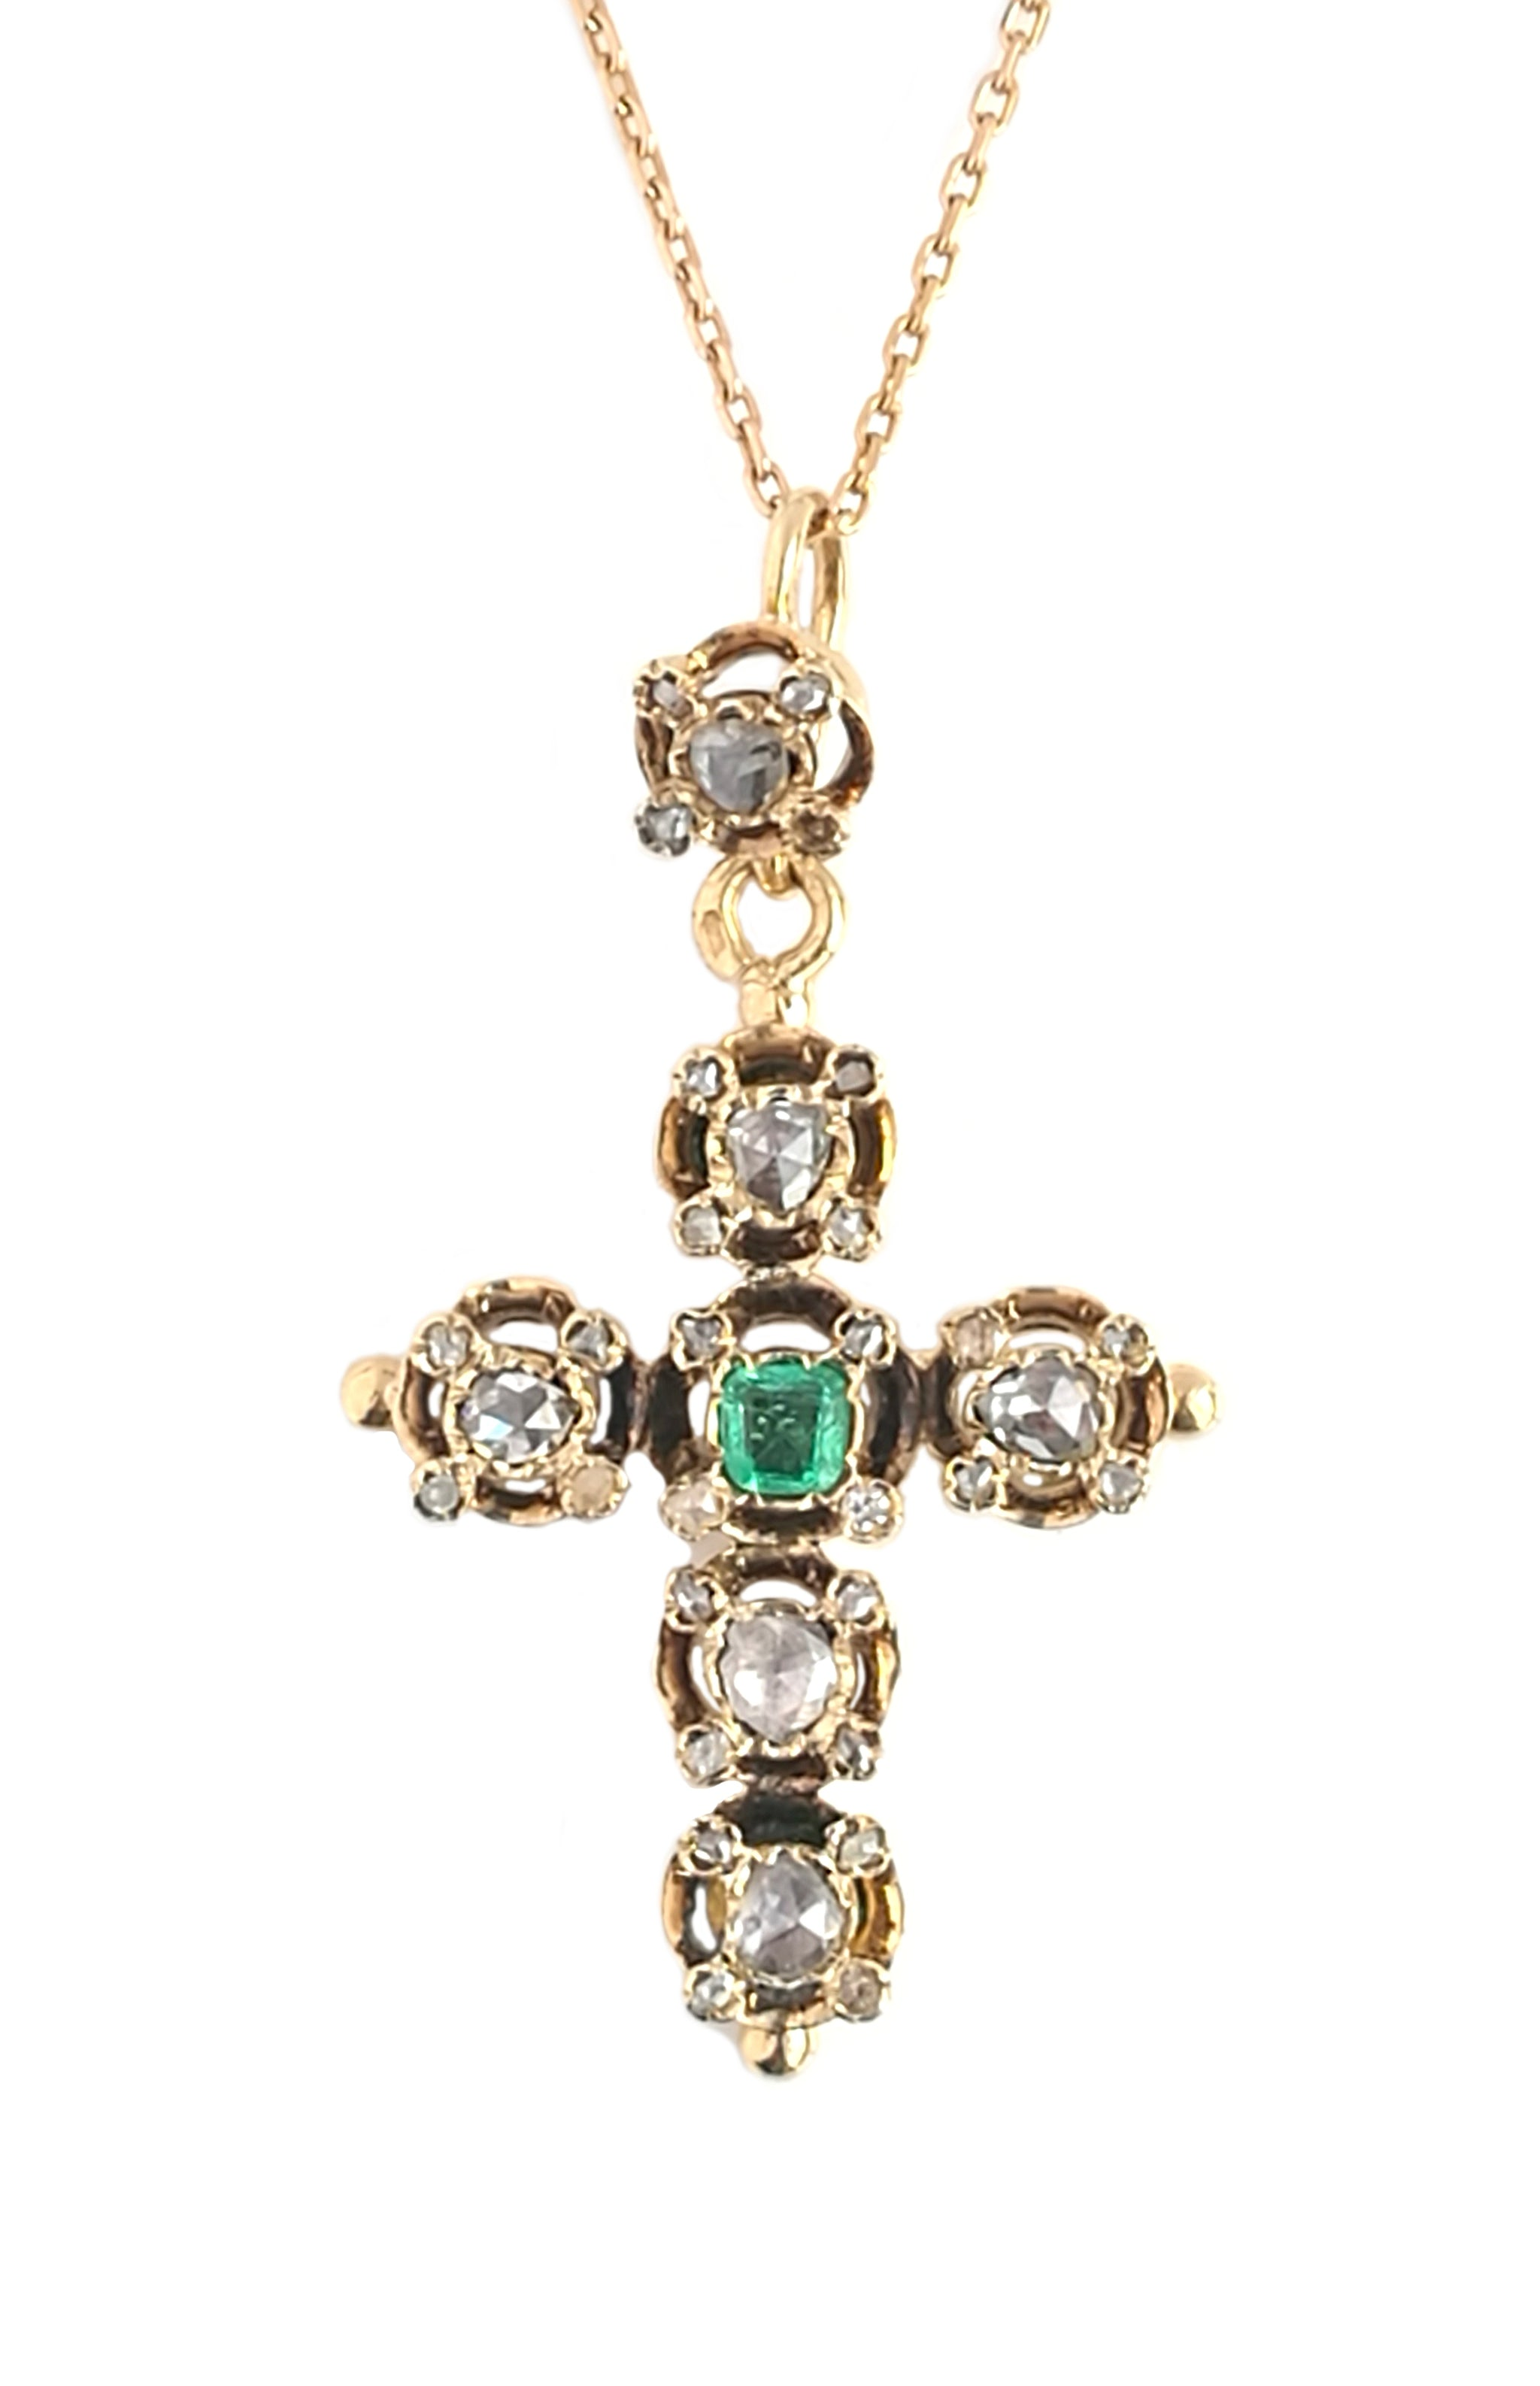 Antique French Victorian Rose Cut Diamond & Emerald Cross Pendant